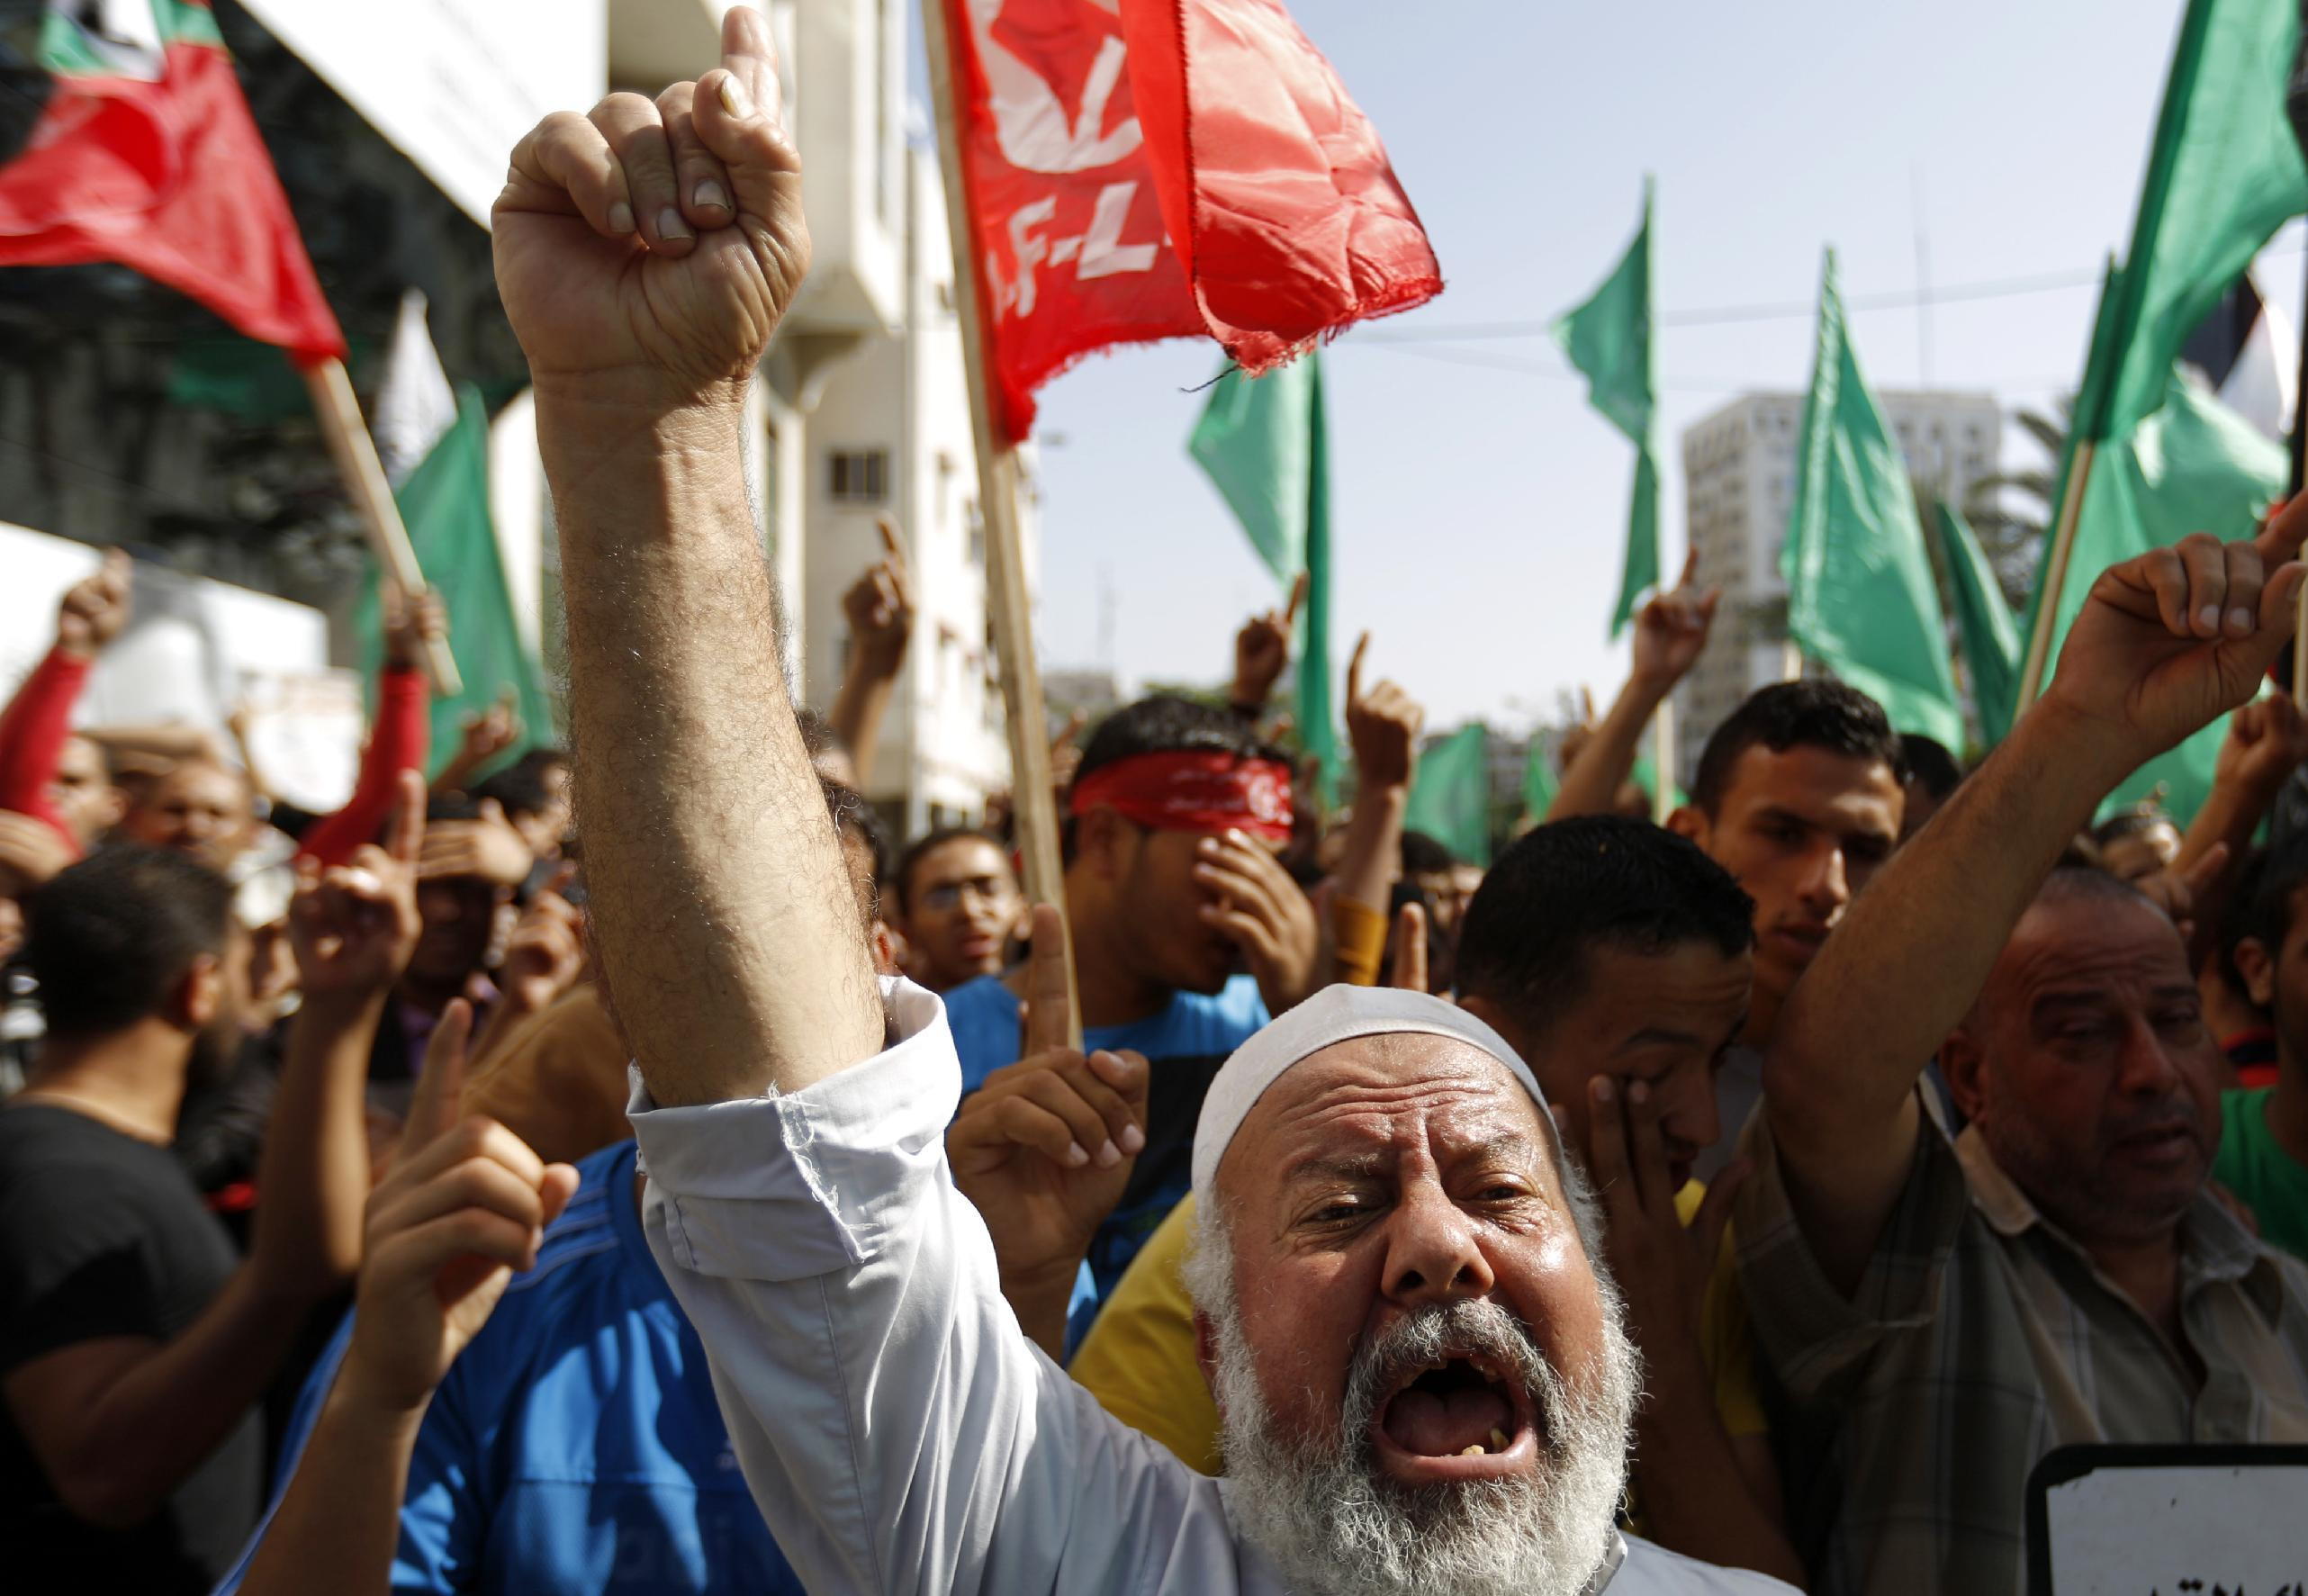 Palestinians shout slogans during a rally to protest after authorities restricted access to the al-Aqsa mosque compound on October 17, 2014 in Gaza city (AFP Photo/Mohammed Abed)